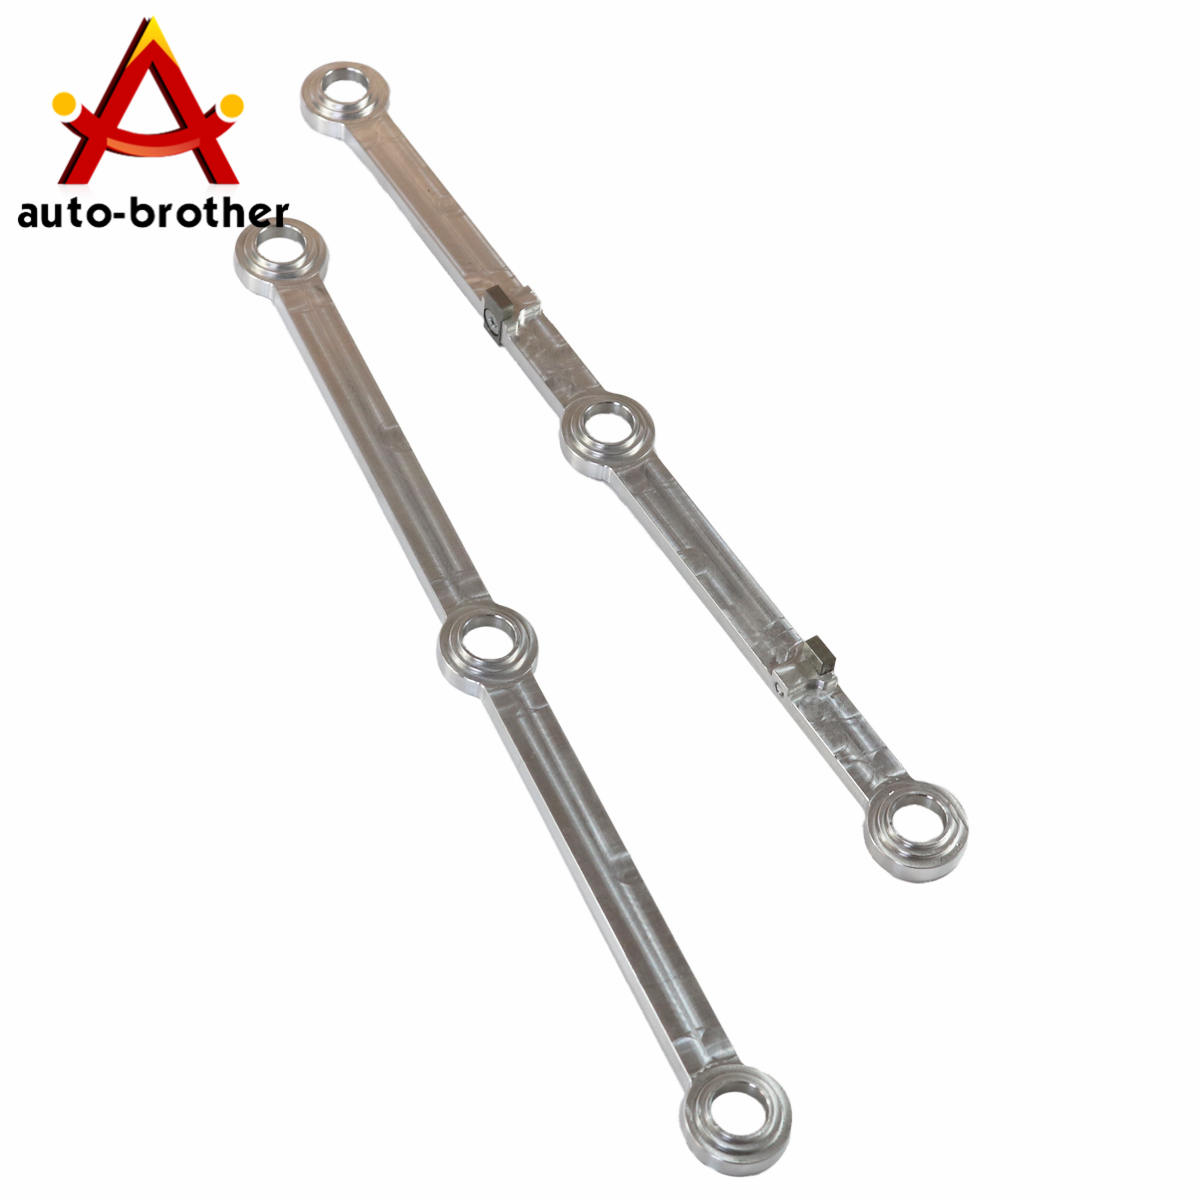 Intake Manifold Runner Connecting Rods Kit Om642 For